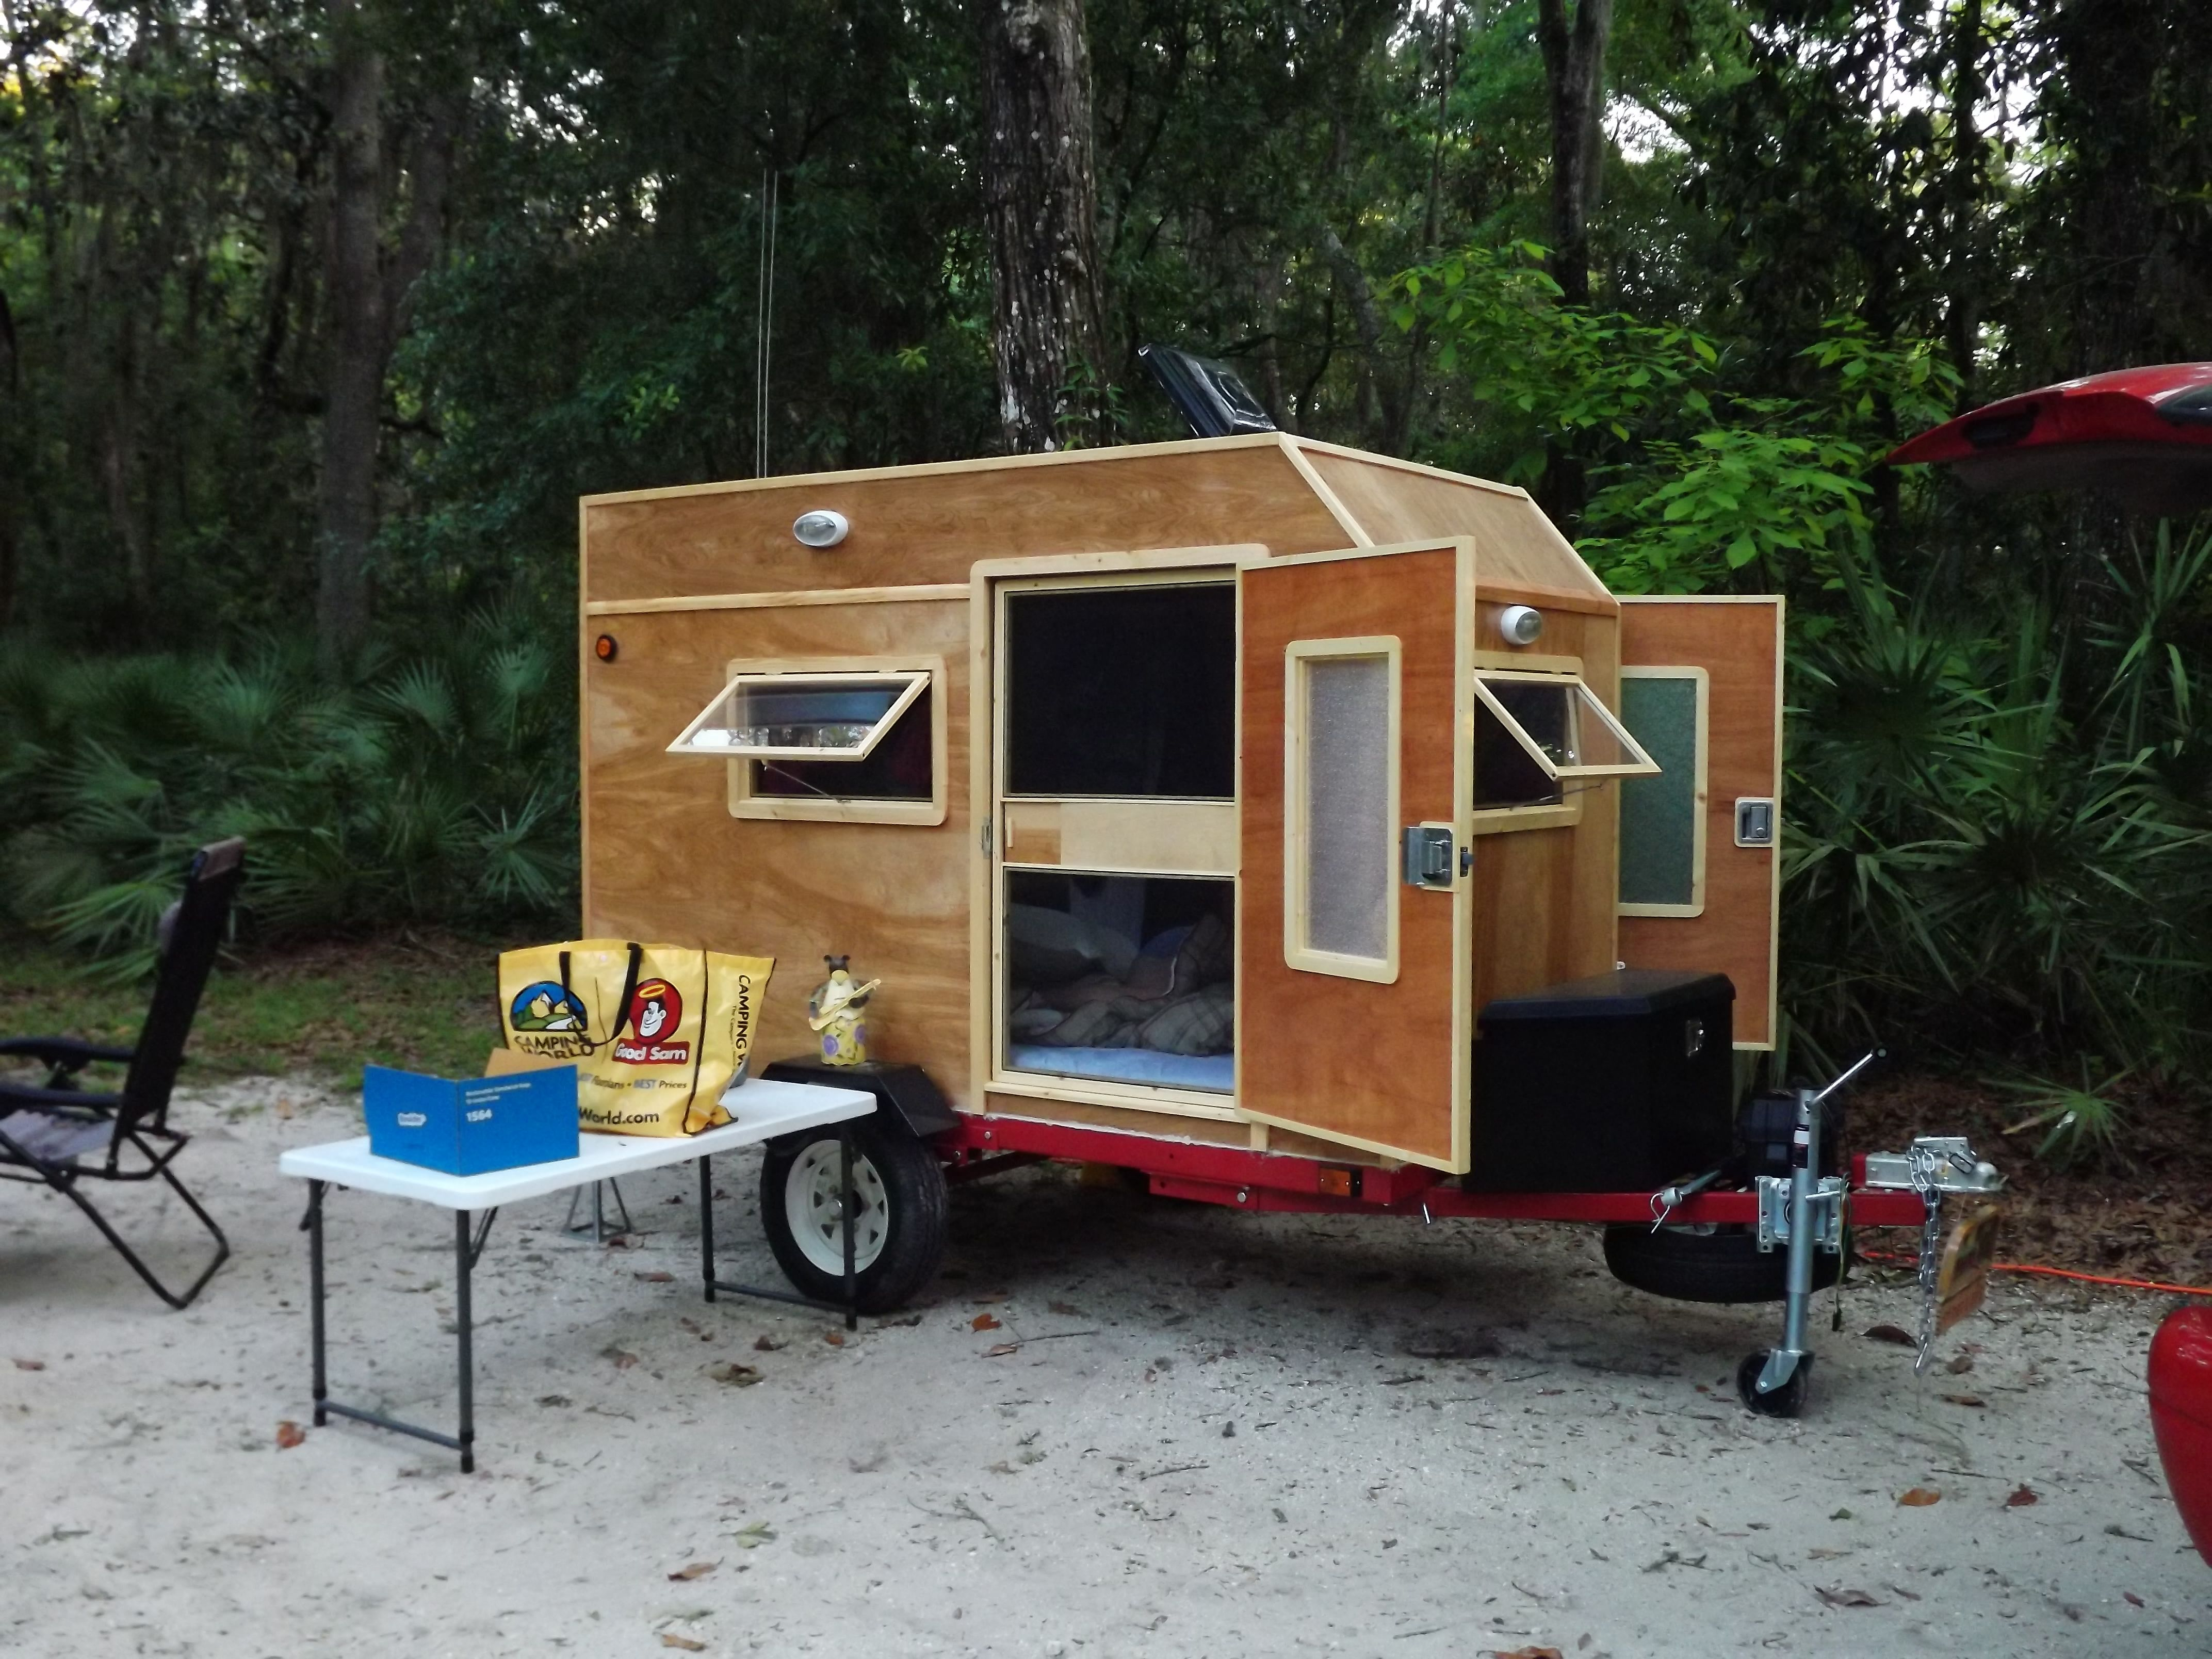 Camping Trailer Small Woody Camper Frugal Way Camping With Mini